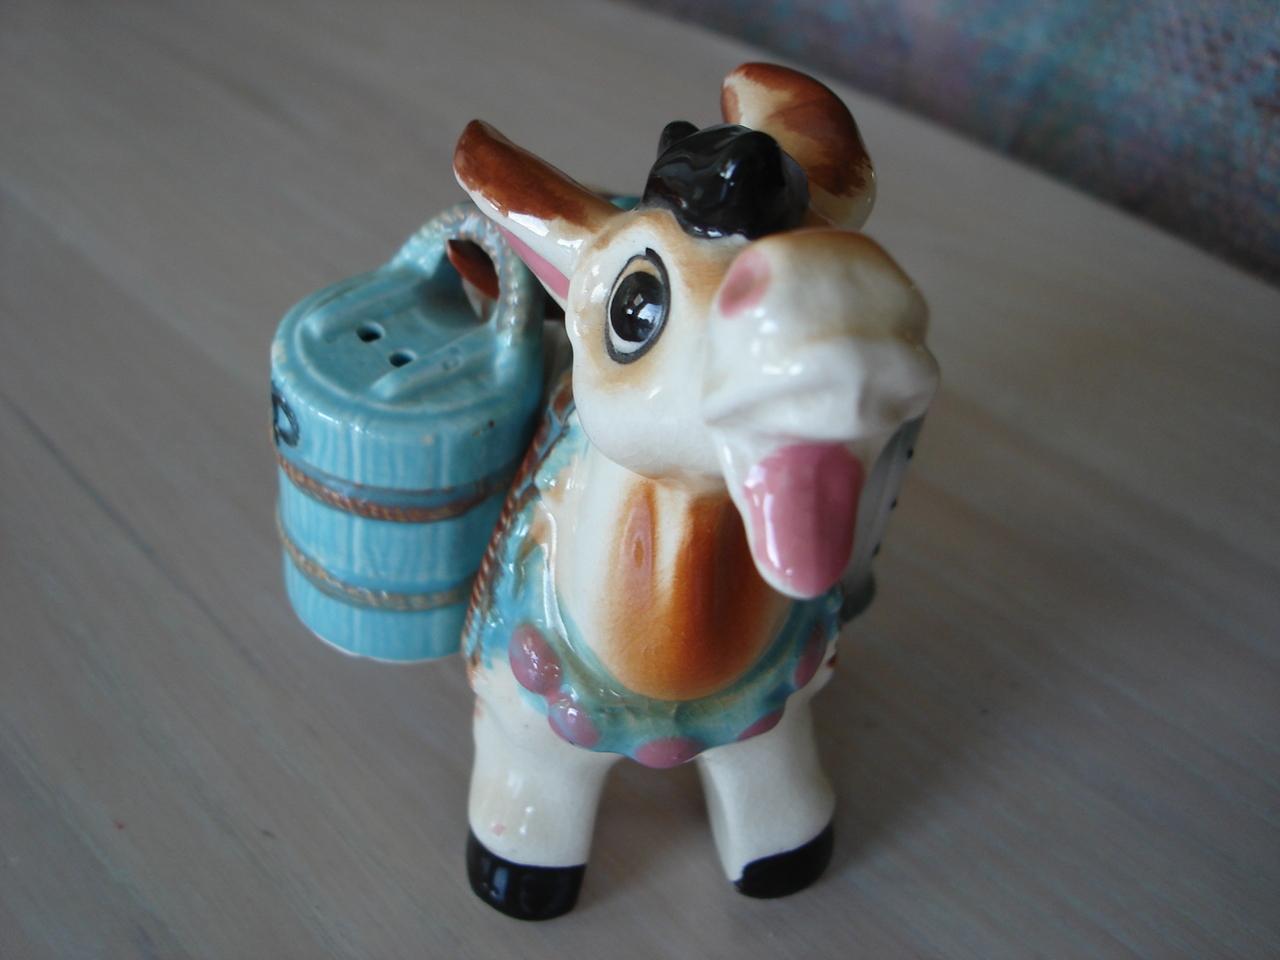 Vintage 1976 Donkey Figurine Salt, Pepper Holder